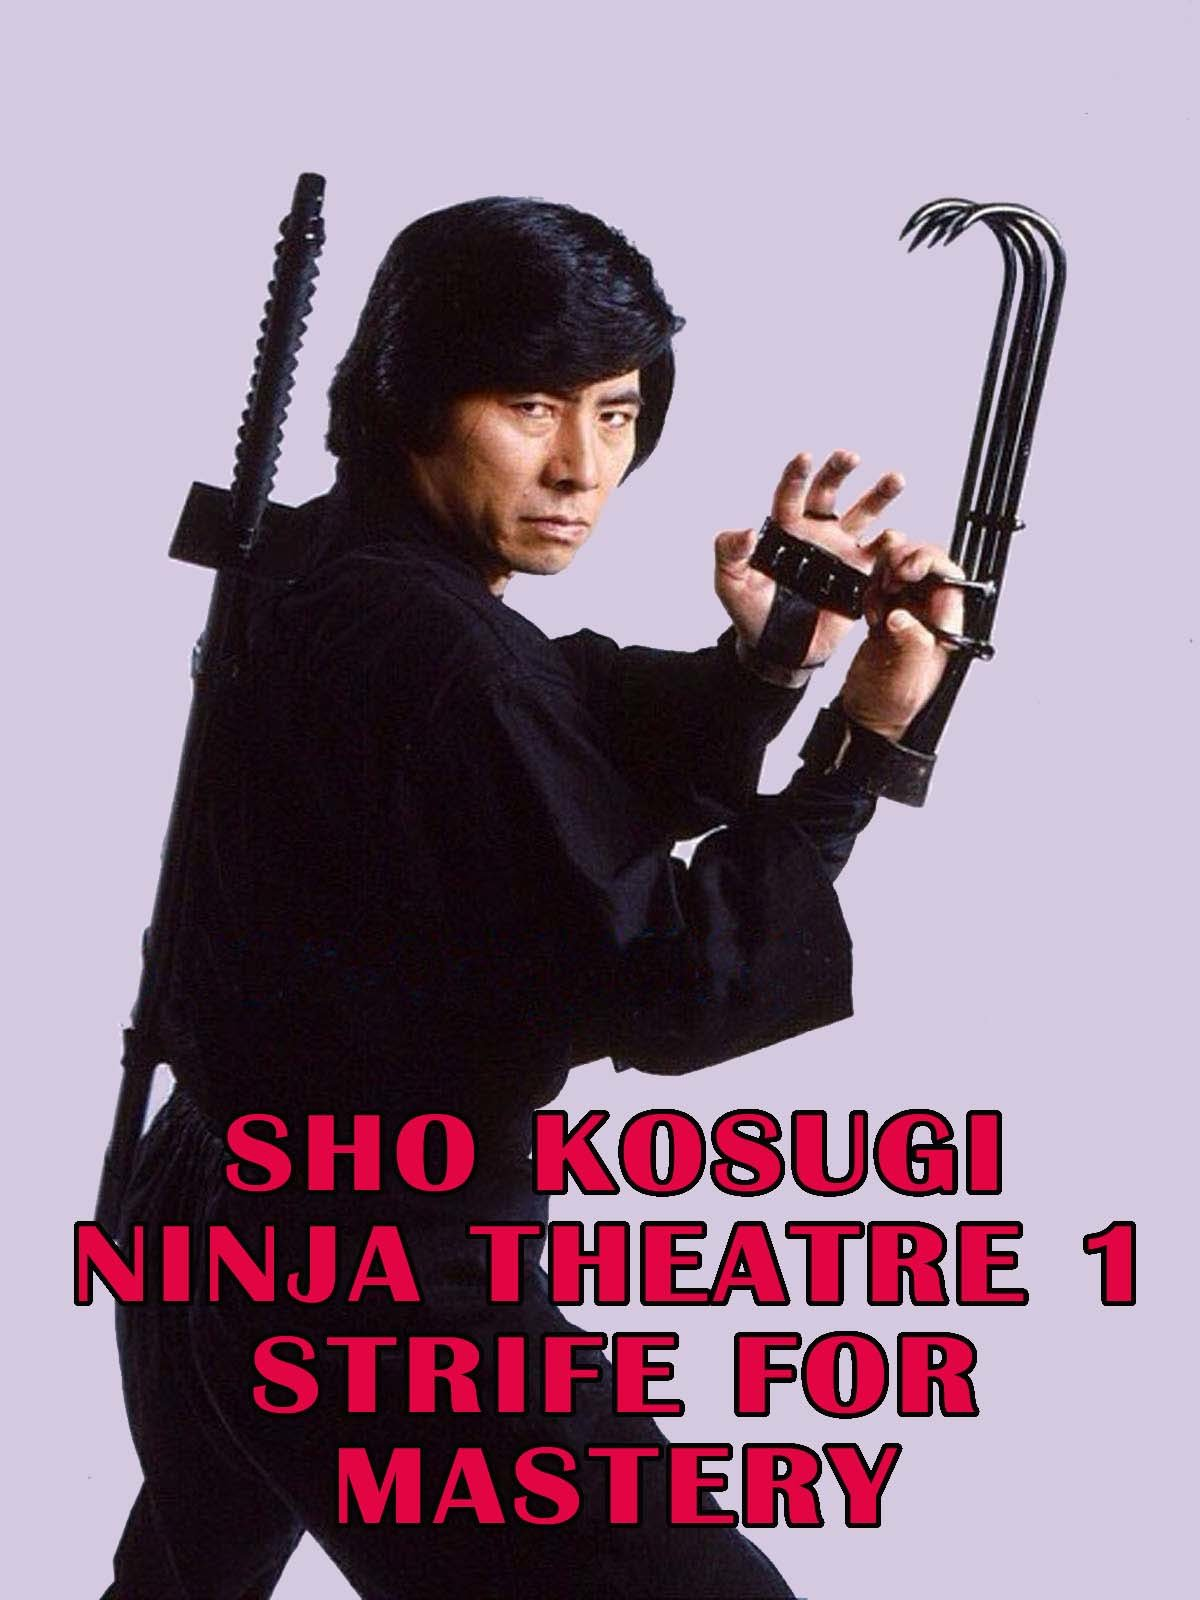 Sho Kosugi Ninja Theater 1 Strife For Mastery